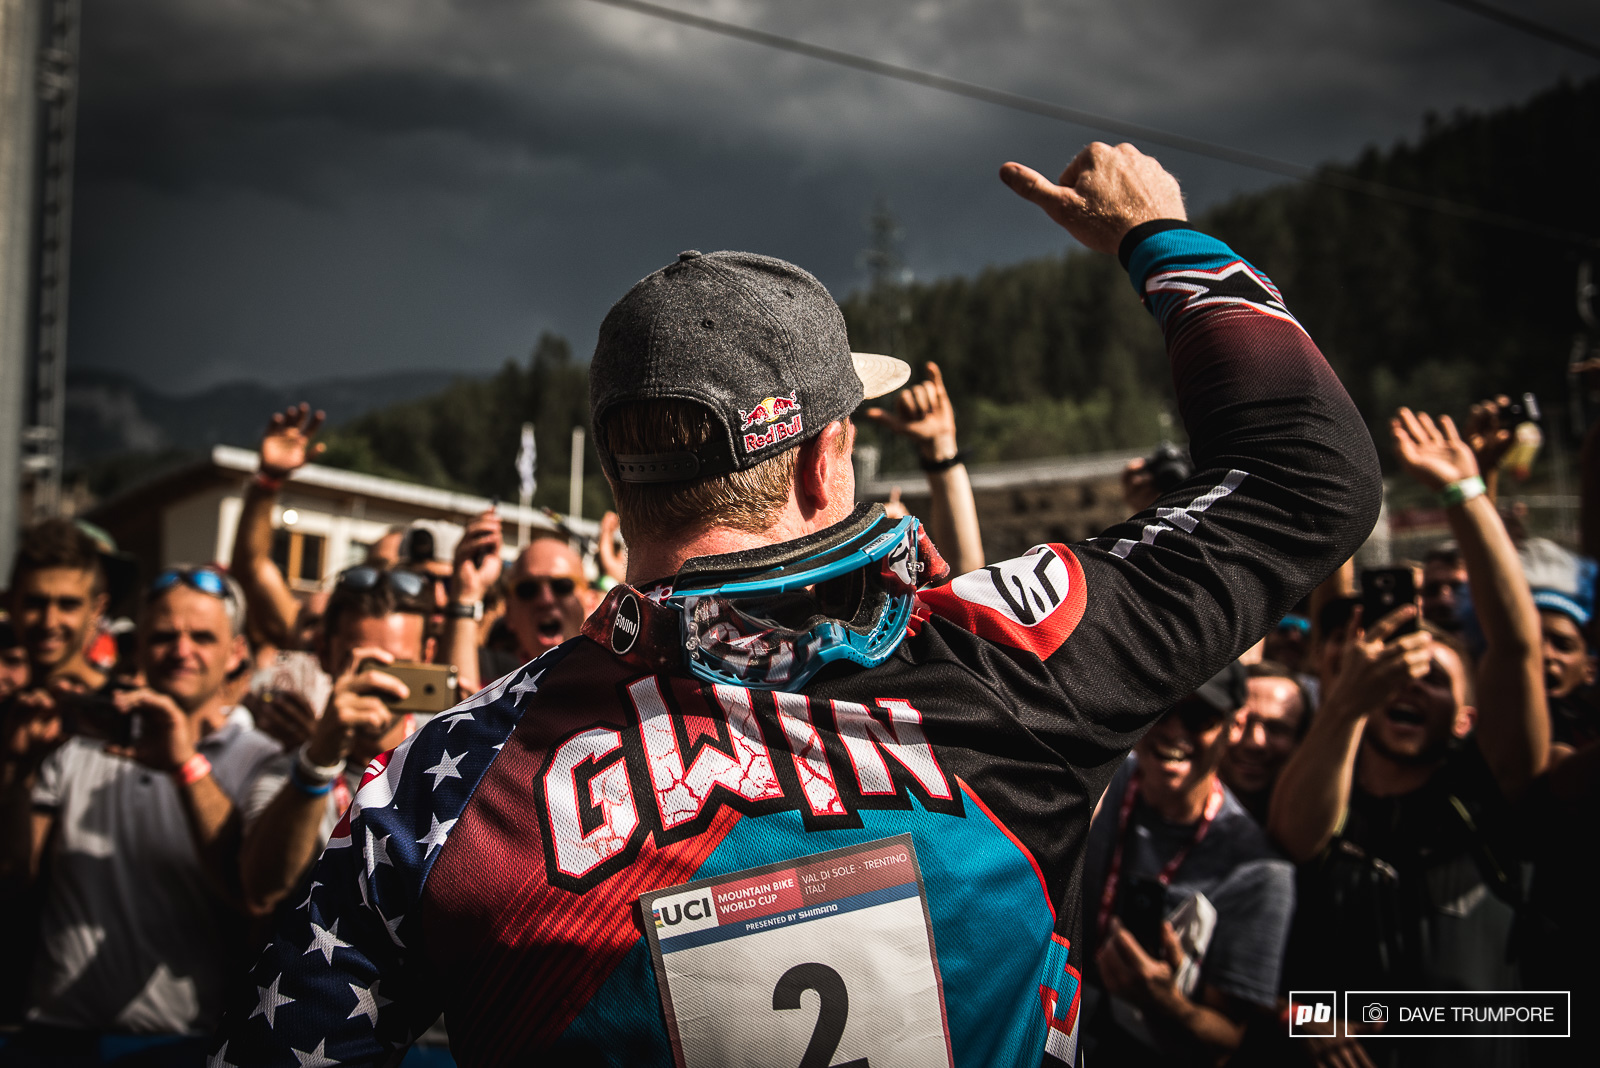 Aaron Gwin is your 2017 UCI World Cup Champion.